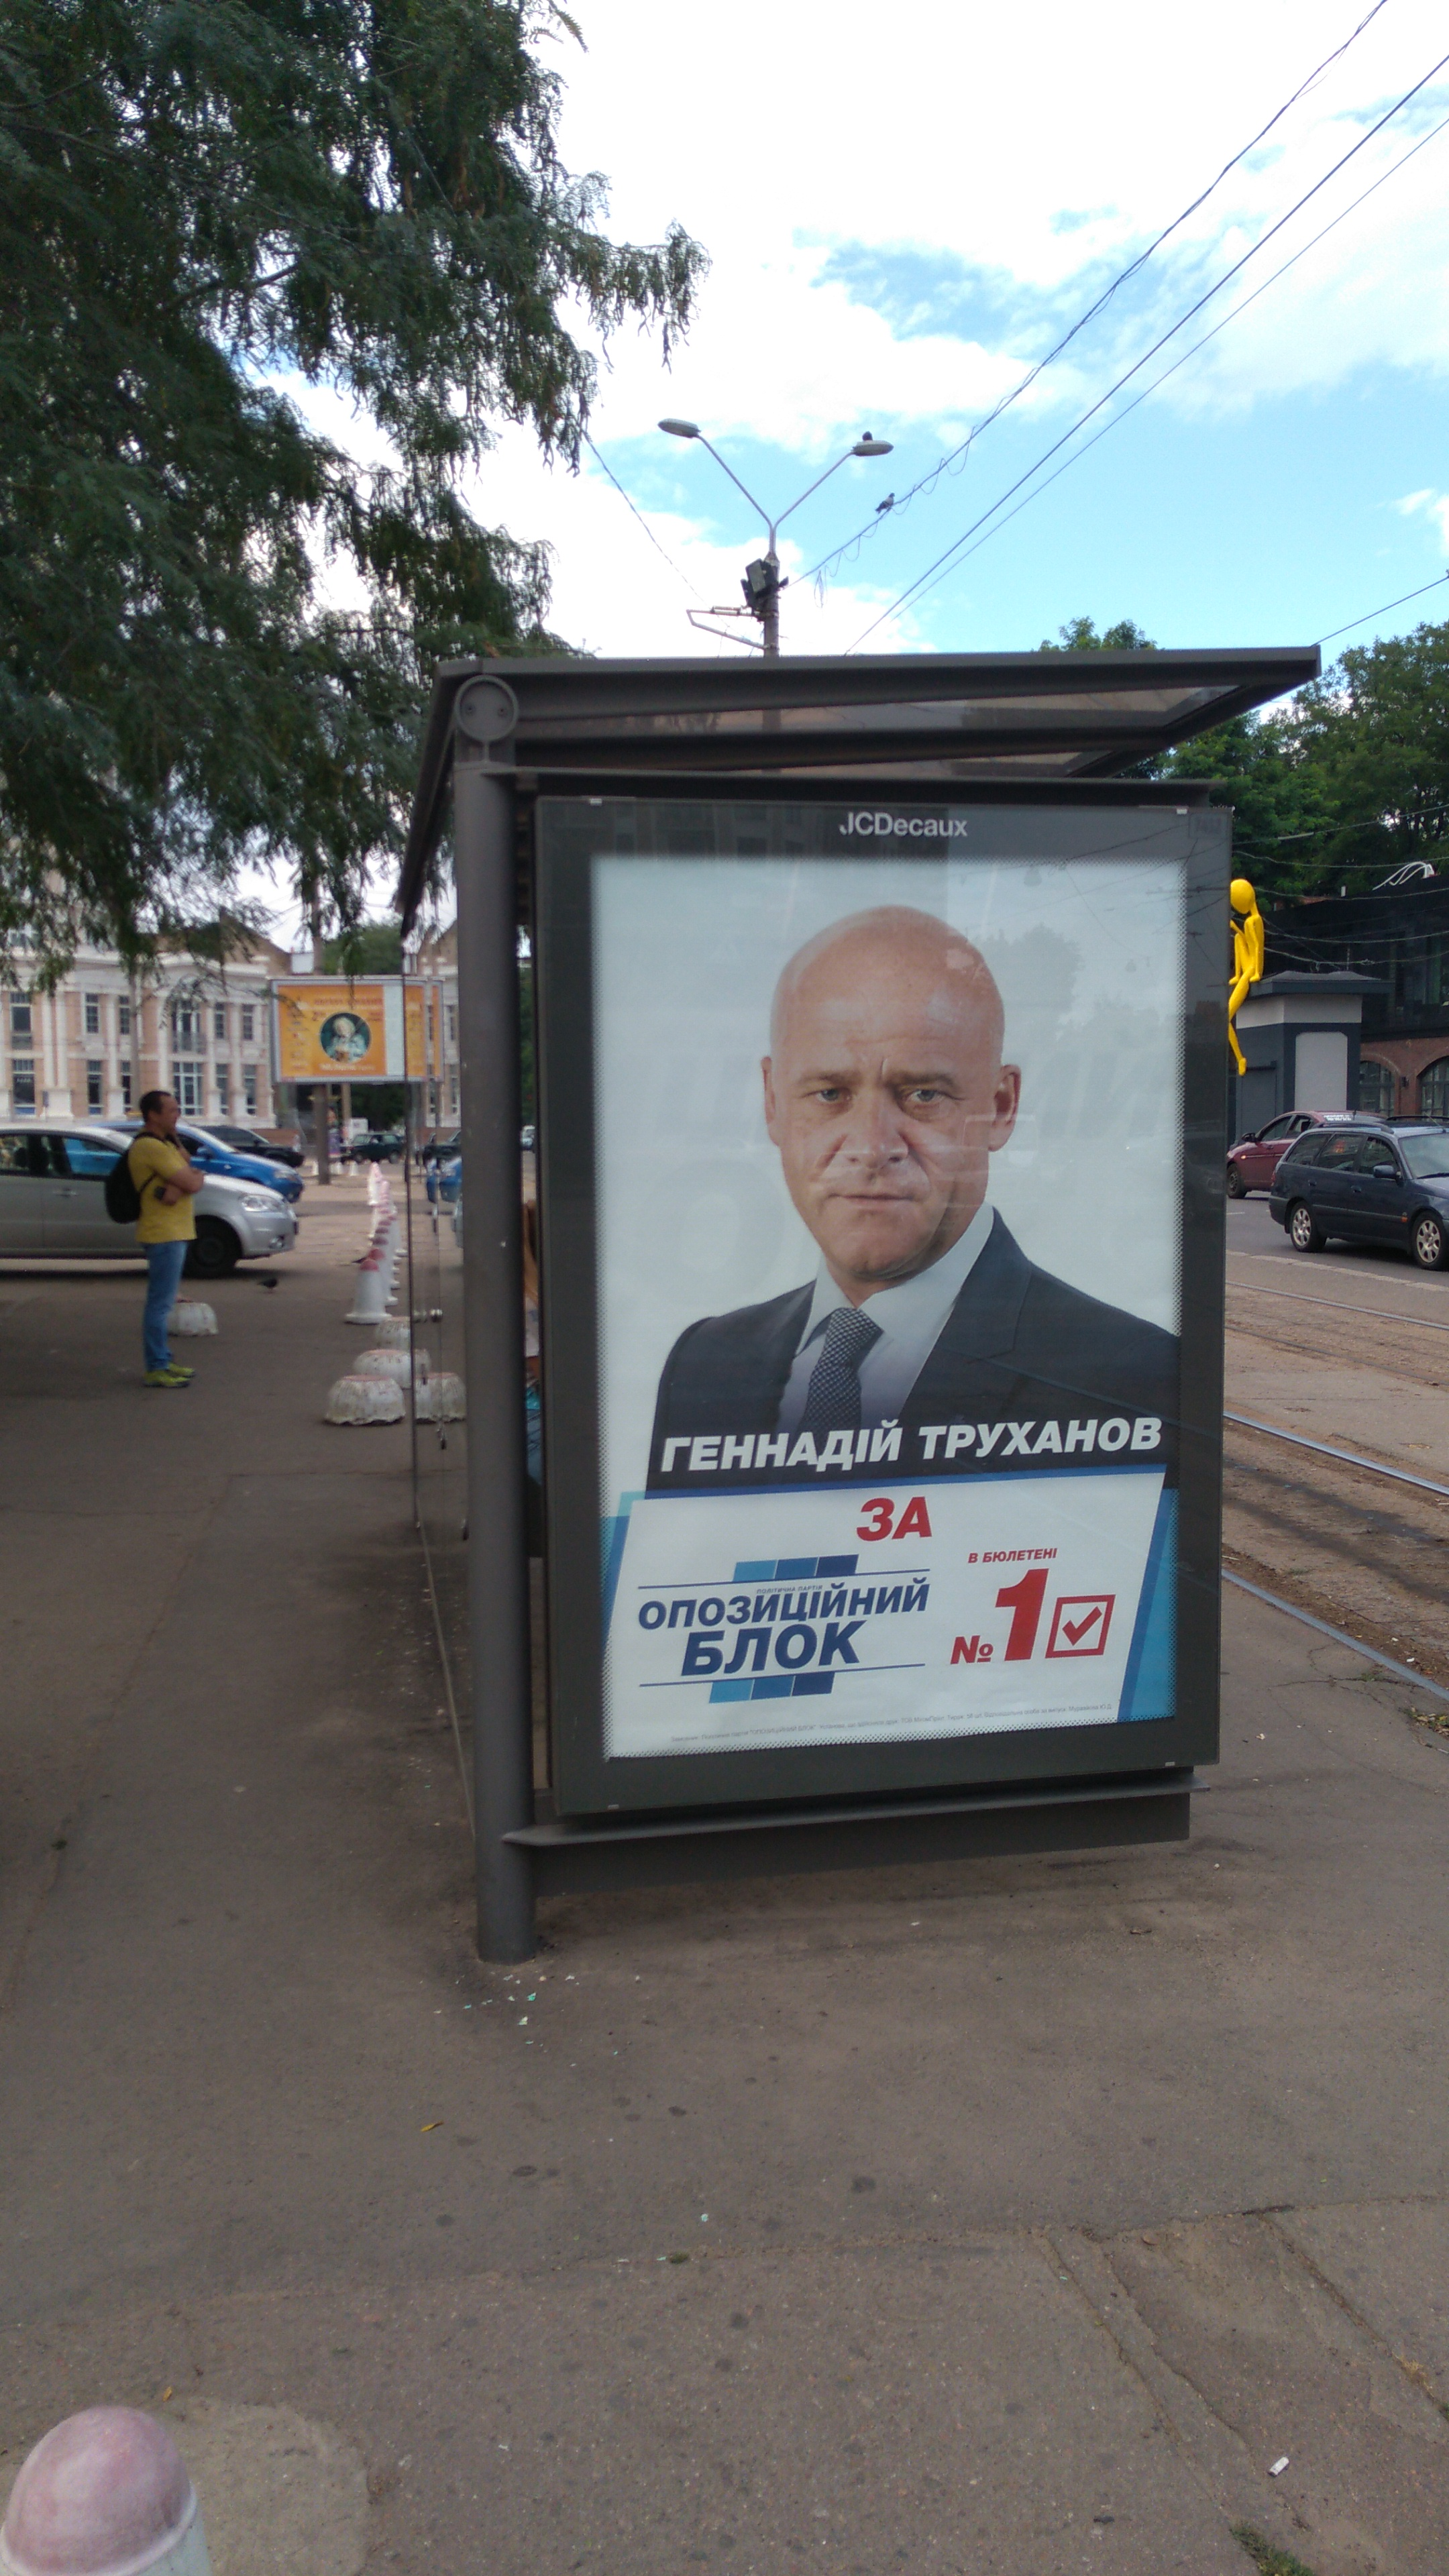 Odesa Mayor Gennady Trukhanov running for the Opposition Block Party election poster in a prime Odesa bus shelter location